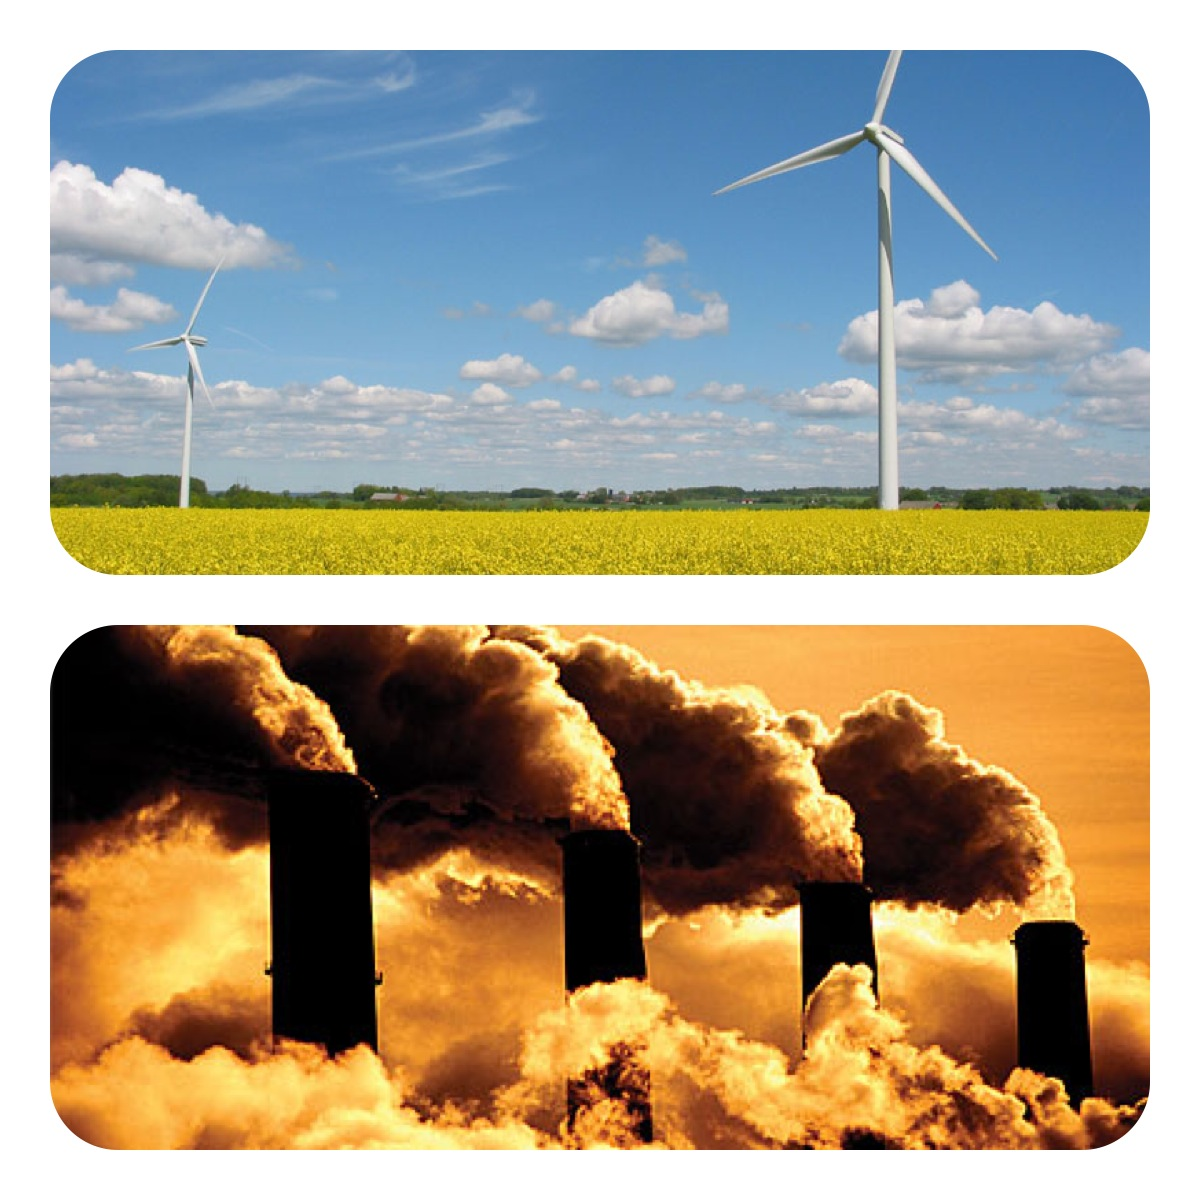 """fossil fuels and alternative energy resource essay - alternative renewable energy """"windmills"""" renewable energy is an alternative to fossil fuels and nuclear power, and was commonly called alternative energy in the 1970s and 1980s scientists have advanced a plan to power 100% of the world's energy with wind, hydroelectric, and solar power by the year 2030."""